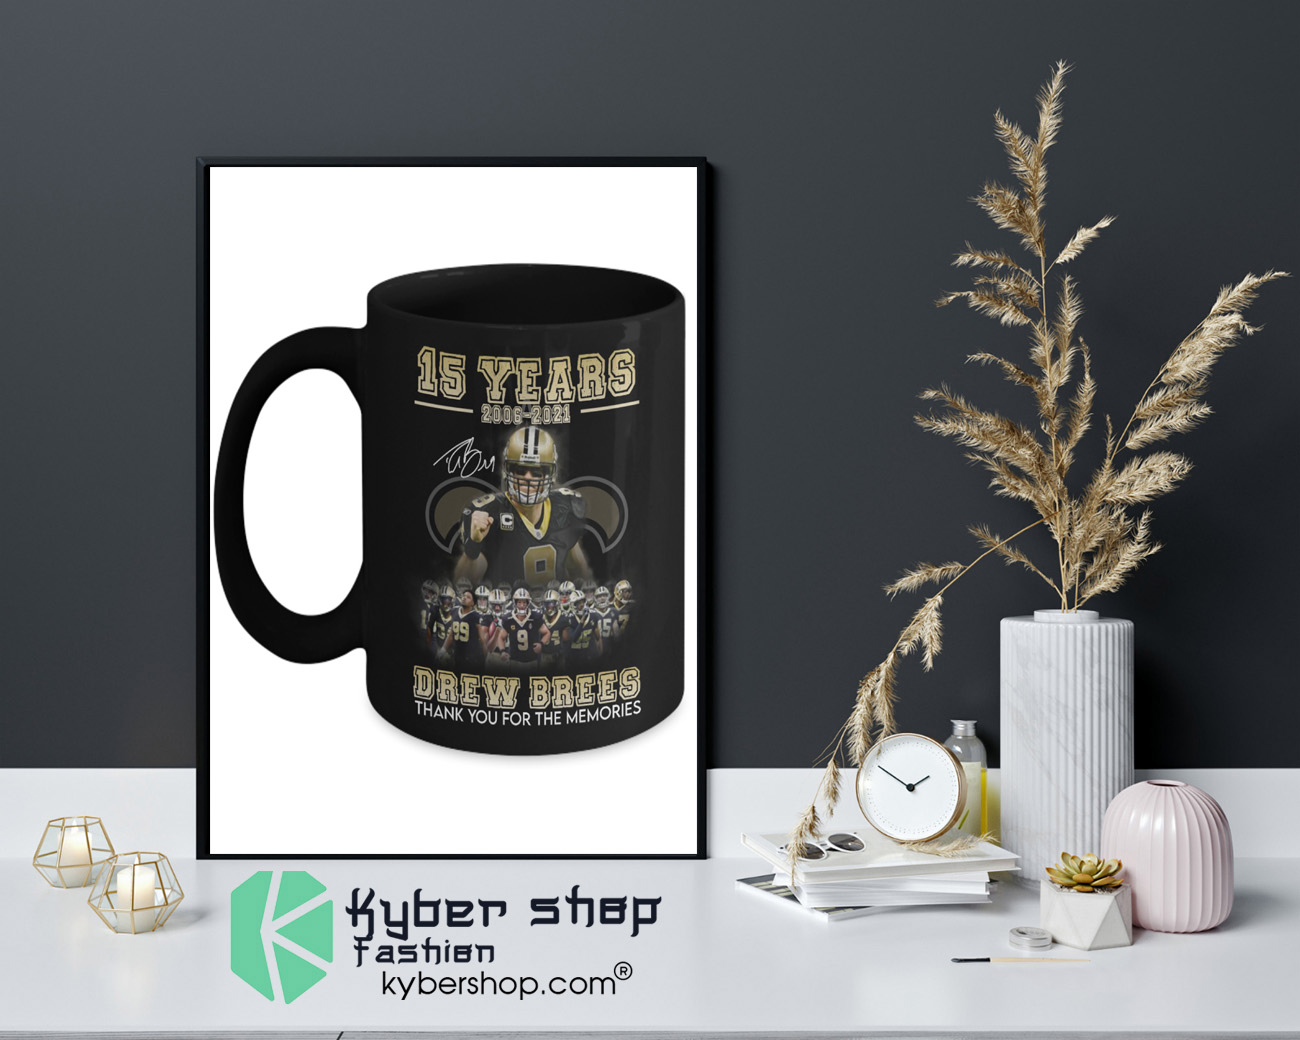 15 years 2006 2021 drew brees thank you for the memories mug 4